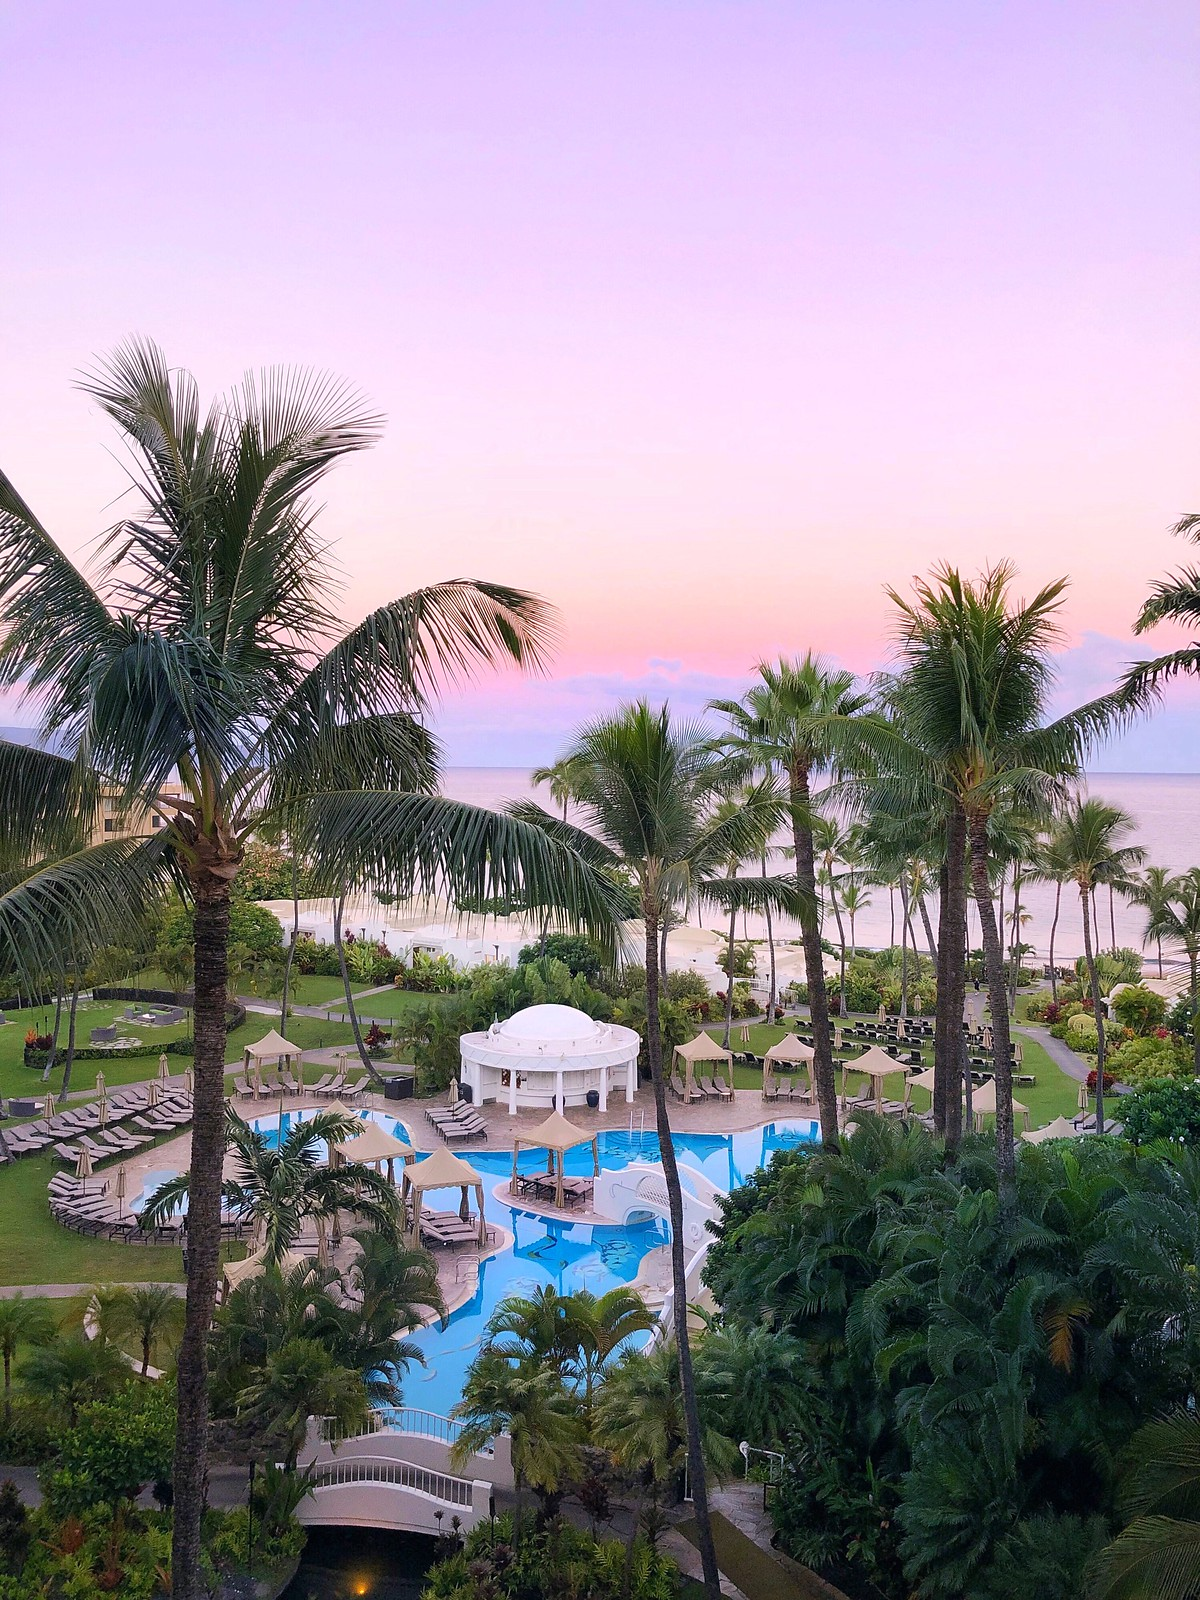 Cotton Candy Sunrise Balcony View Hotel Pool Fairmont Kea Lani BEST Hotel in Maui Where to Stay on Maui Hawaii